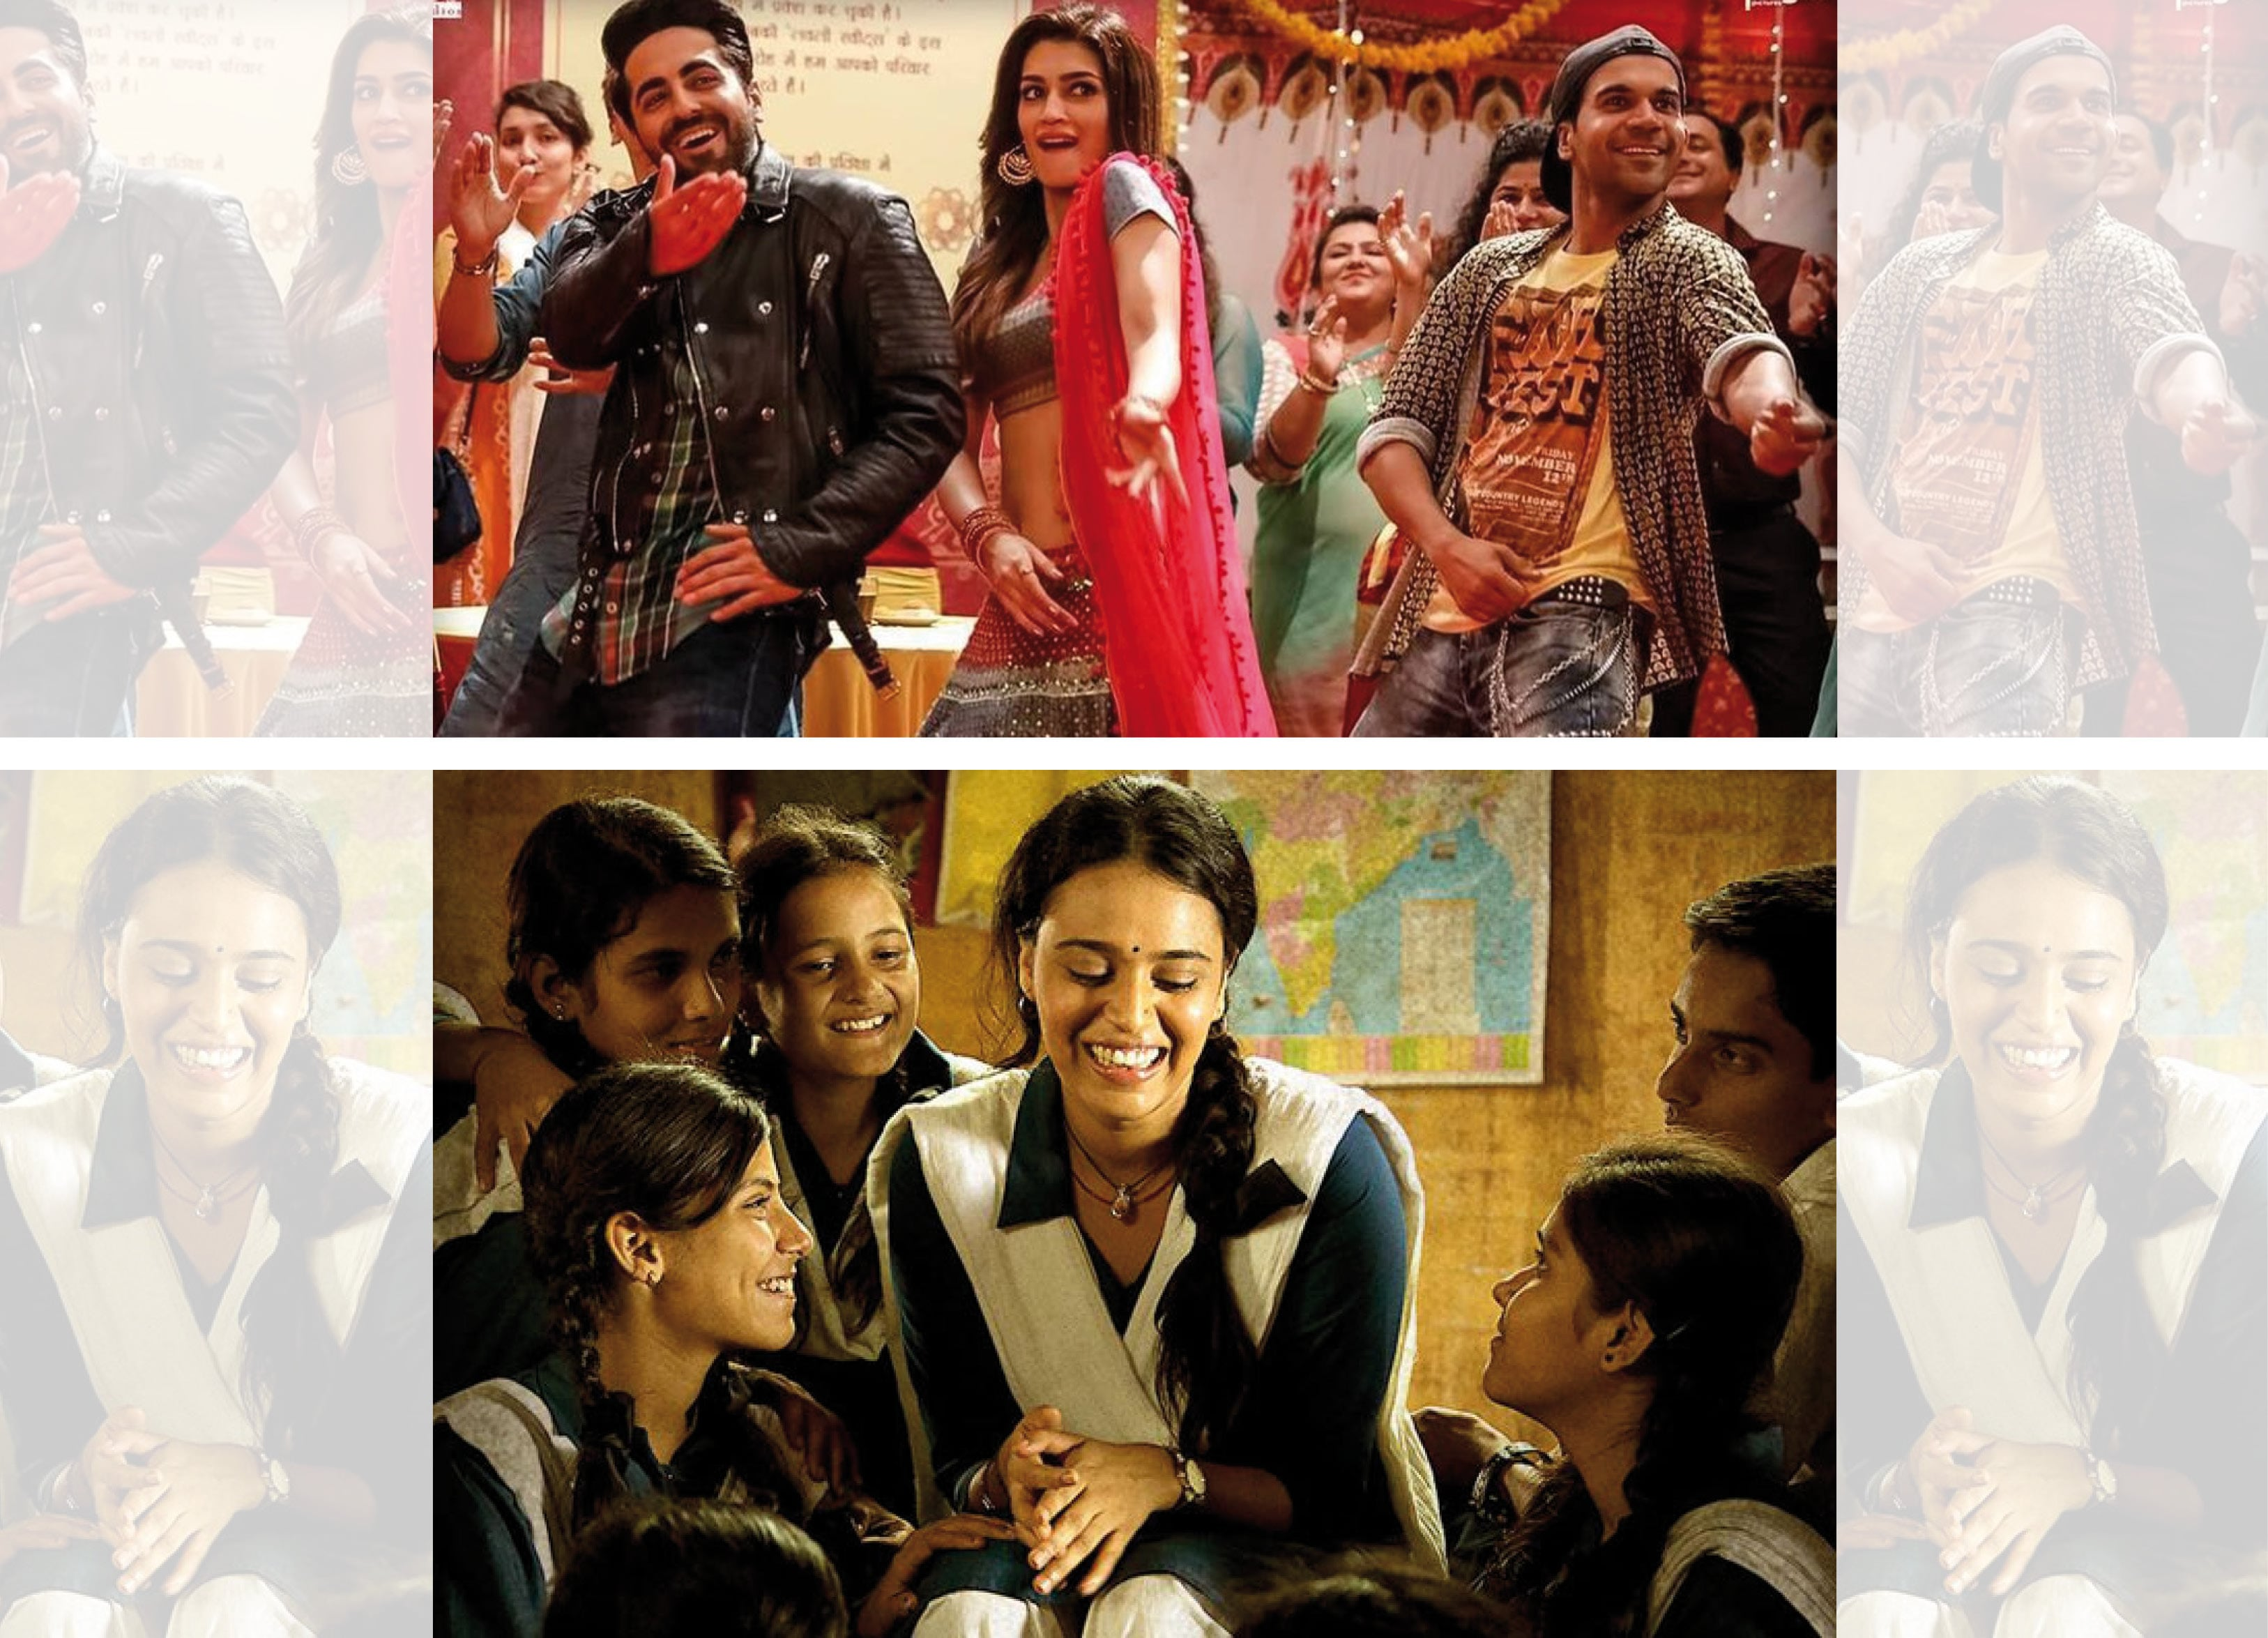 Ashwiny has helmed movies like Bareilly ki Barfi (top) and Nil Battey Sannata (above) among other projects she's currently working on